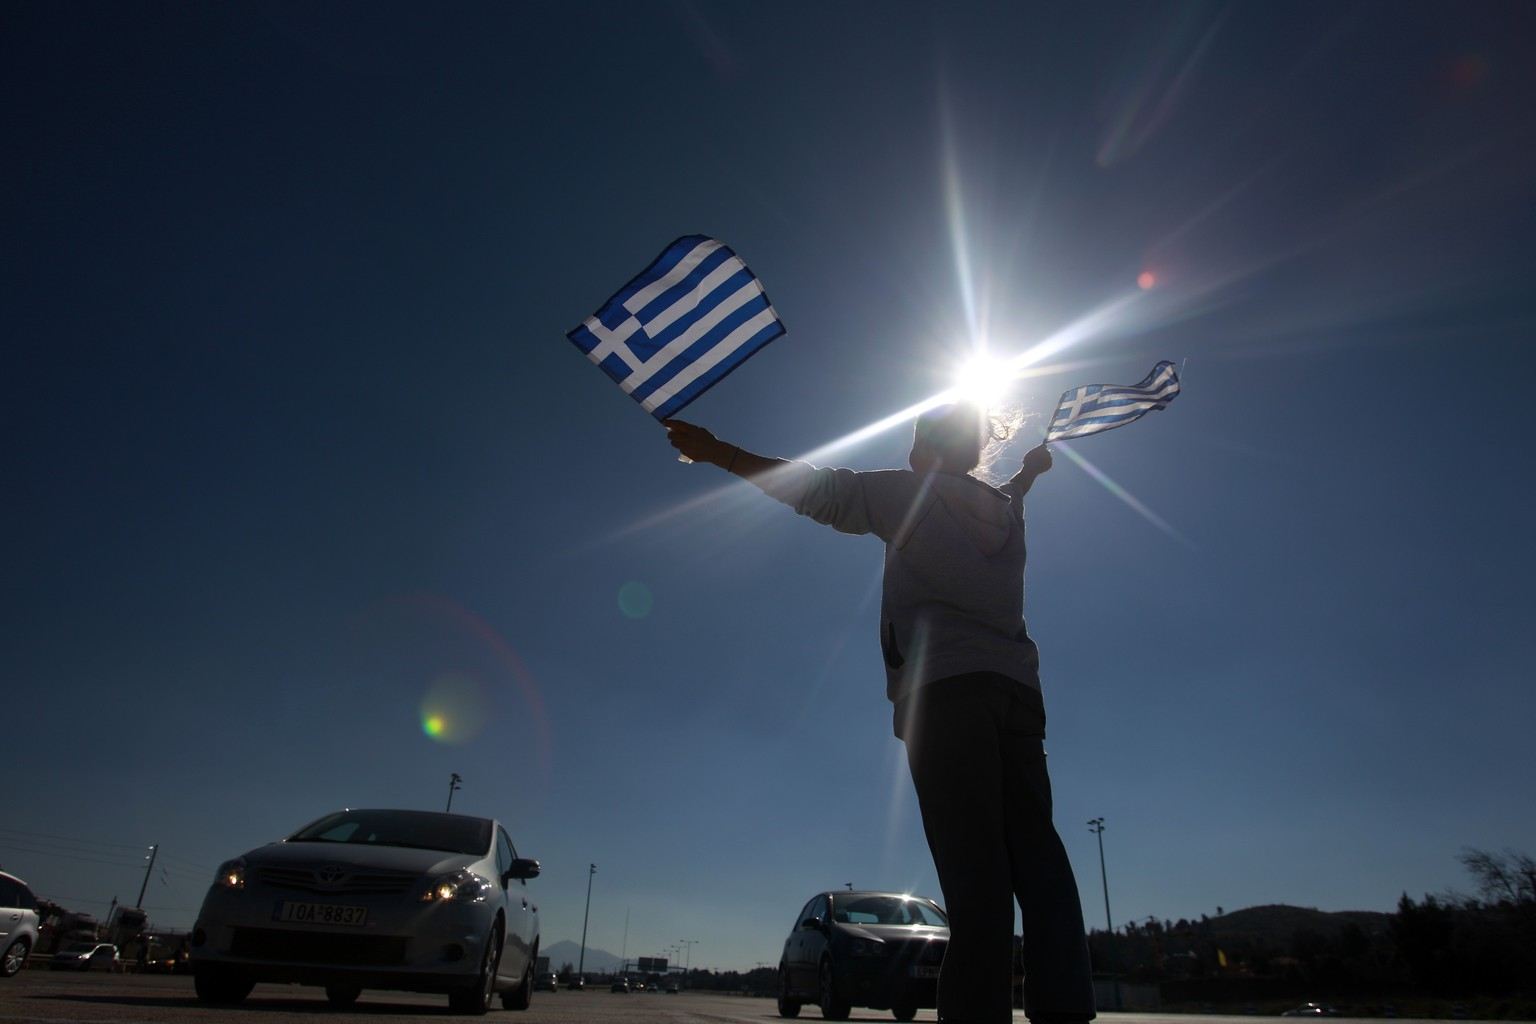 A protester raises Greek national flags to vehicles passing through without paying at the toll stations of Afidnes about 25 kilometers (12 miles) north of Athens, Sunday, Feb. 16, 2014. Hundreds of local residents of outlying Athens areas angered by new price increases for highway tolls took part in the rally. In the last couple of weeks drivers have started to pay 40-60 percent more on some sections of the Greek highway. (AP Photo/Kostas Tsironis)